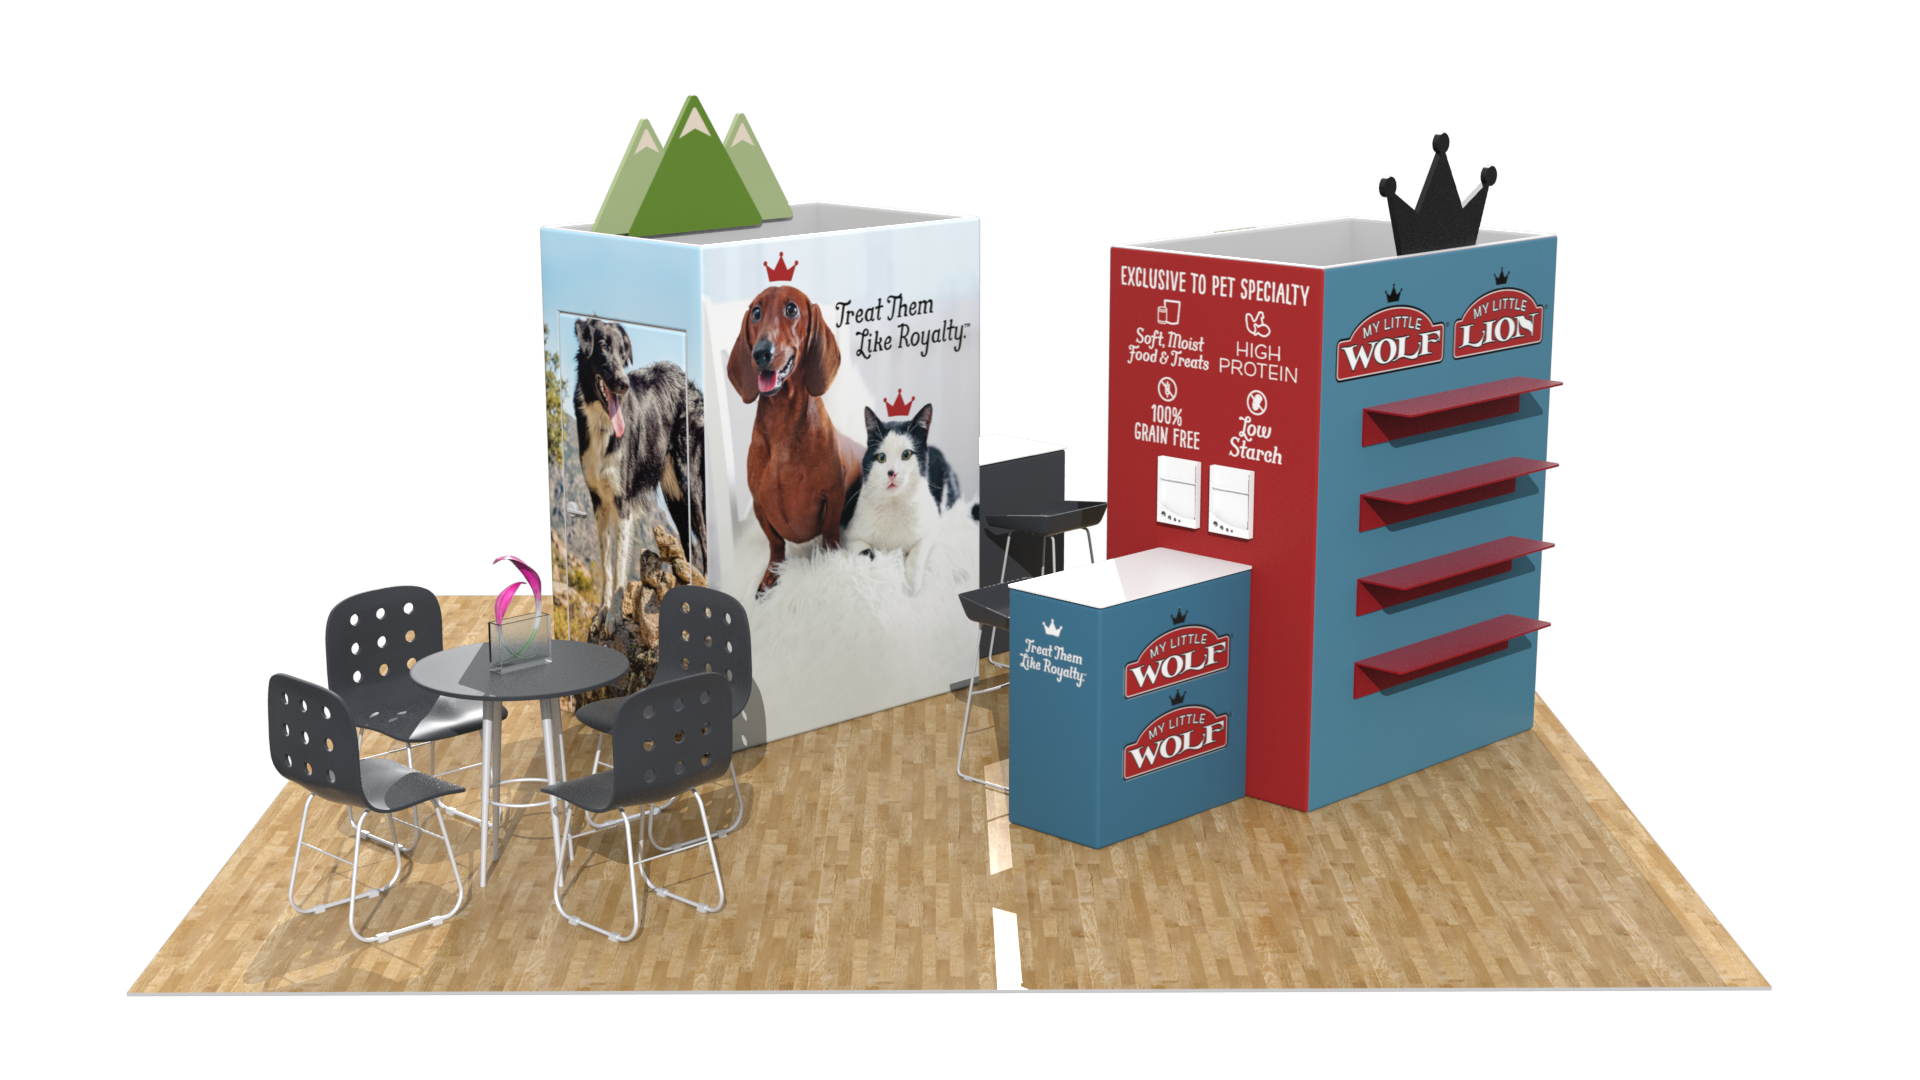 20×20 Booth Concepts